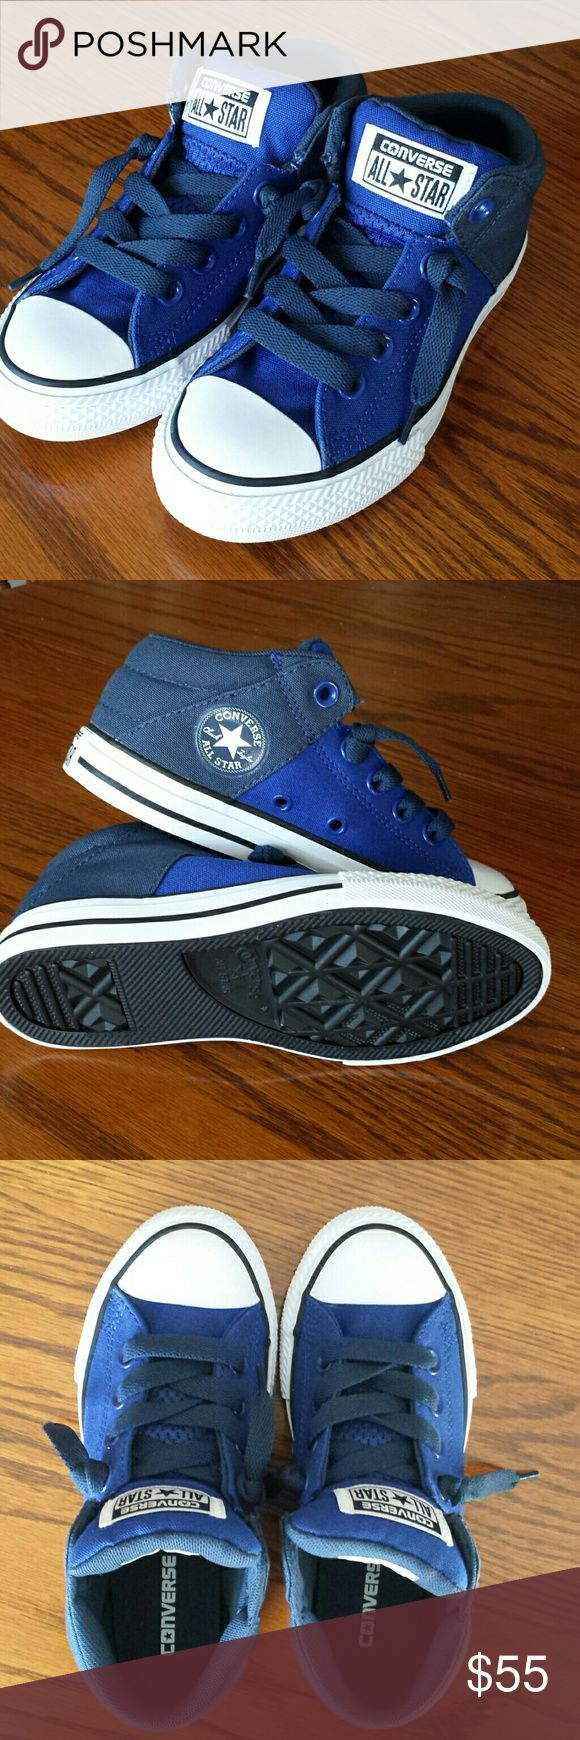 Royal blue Converse Kids new chucks for boys and girls. Between a hi top and low. Has extra padding on tongue and heel wall. Received as a gift but too small. These are new, never been worn. Converse Shoes Sneakers